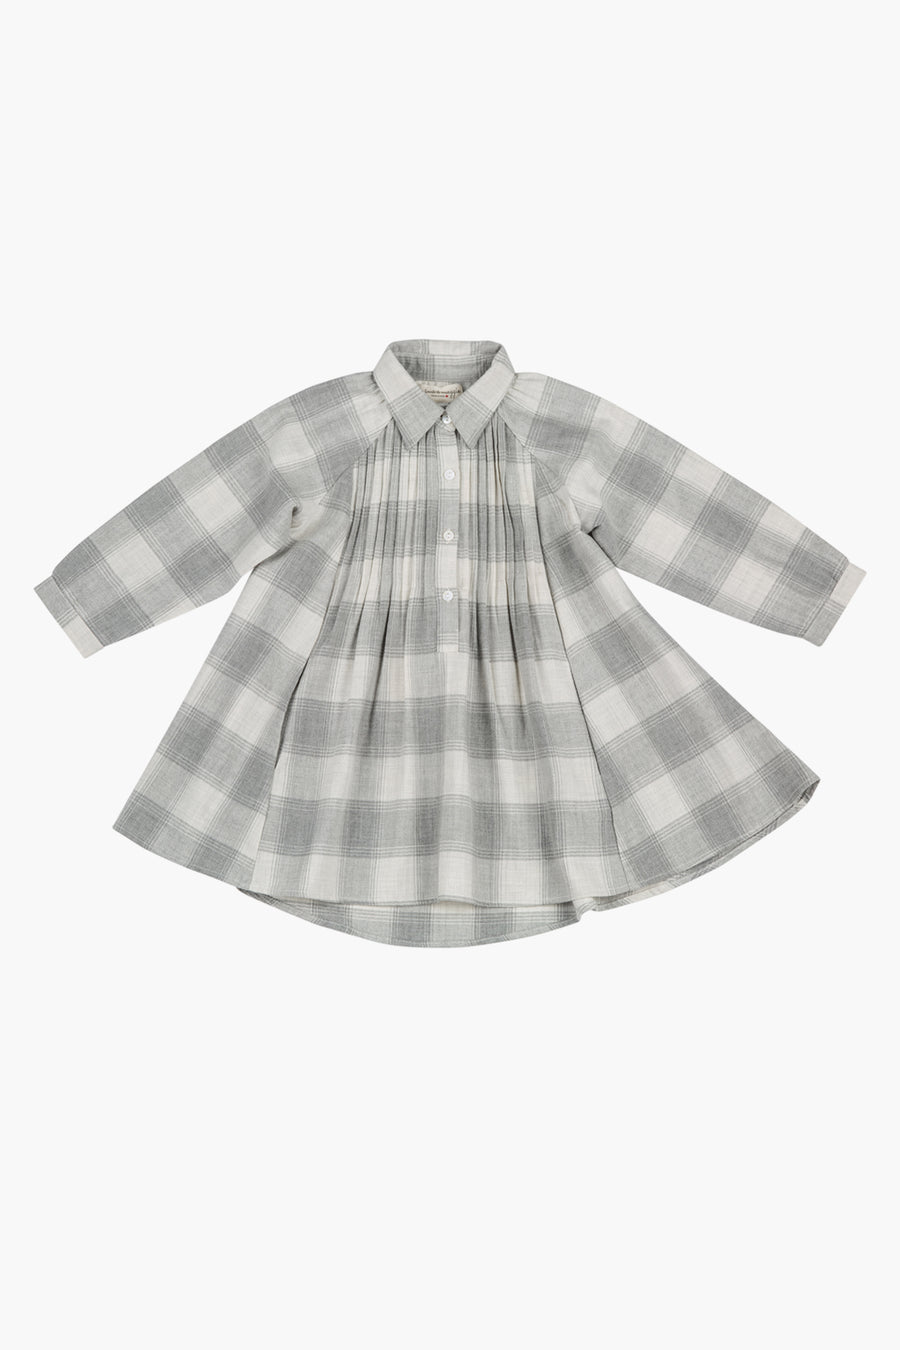 Mimi and Maggie Cozy Plaid Swing Dress - Grey